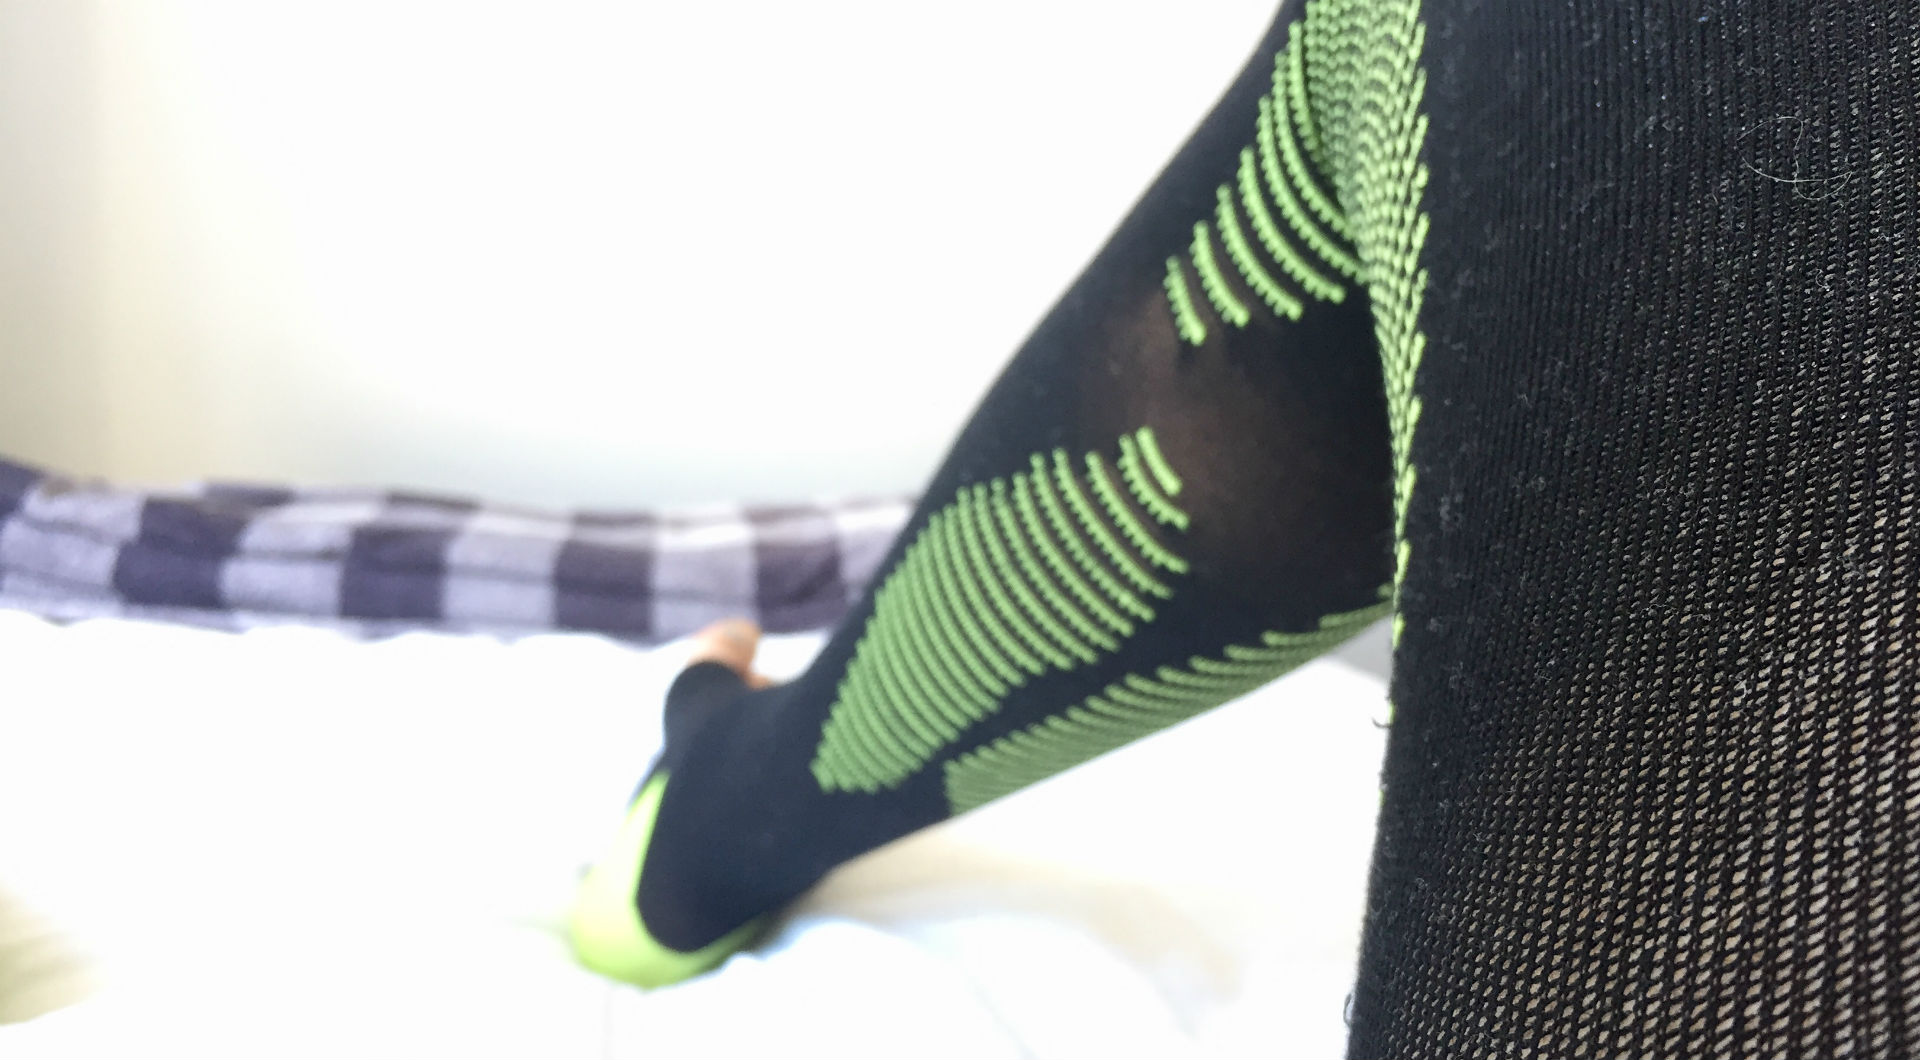 X-BIONIC Precuperation Recovery Pants reviewed by FloRuns